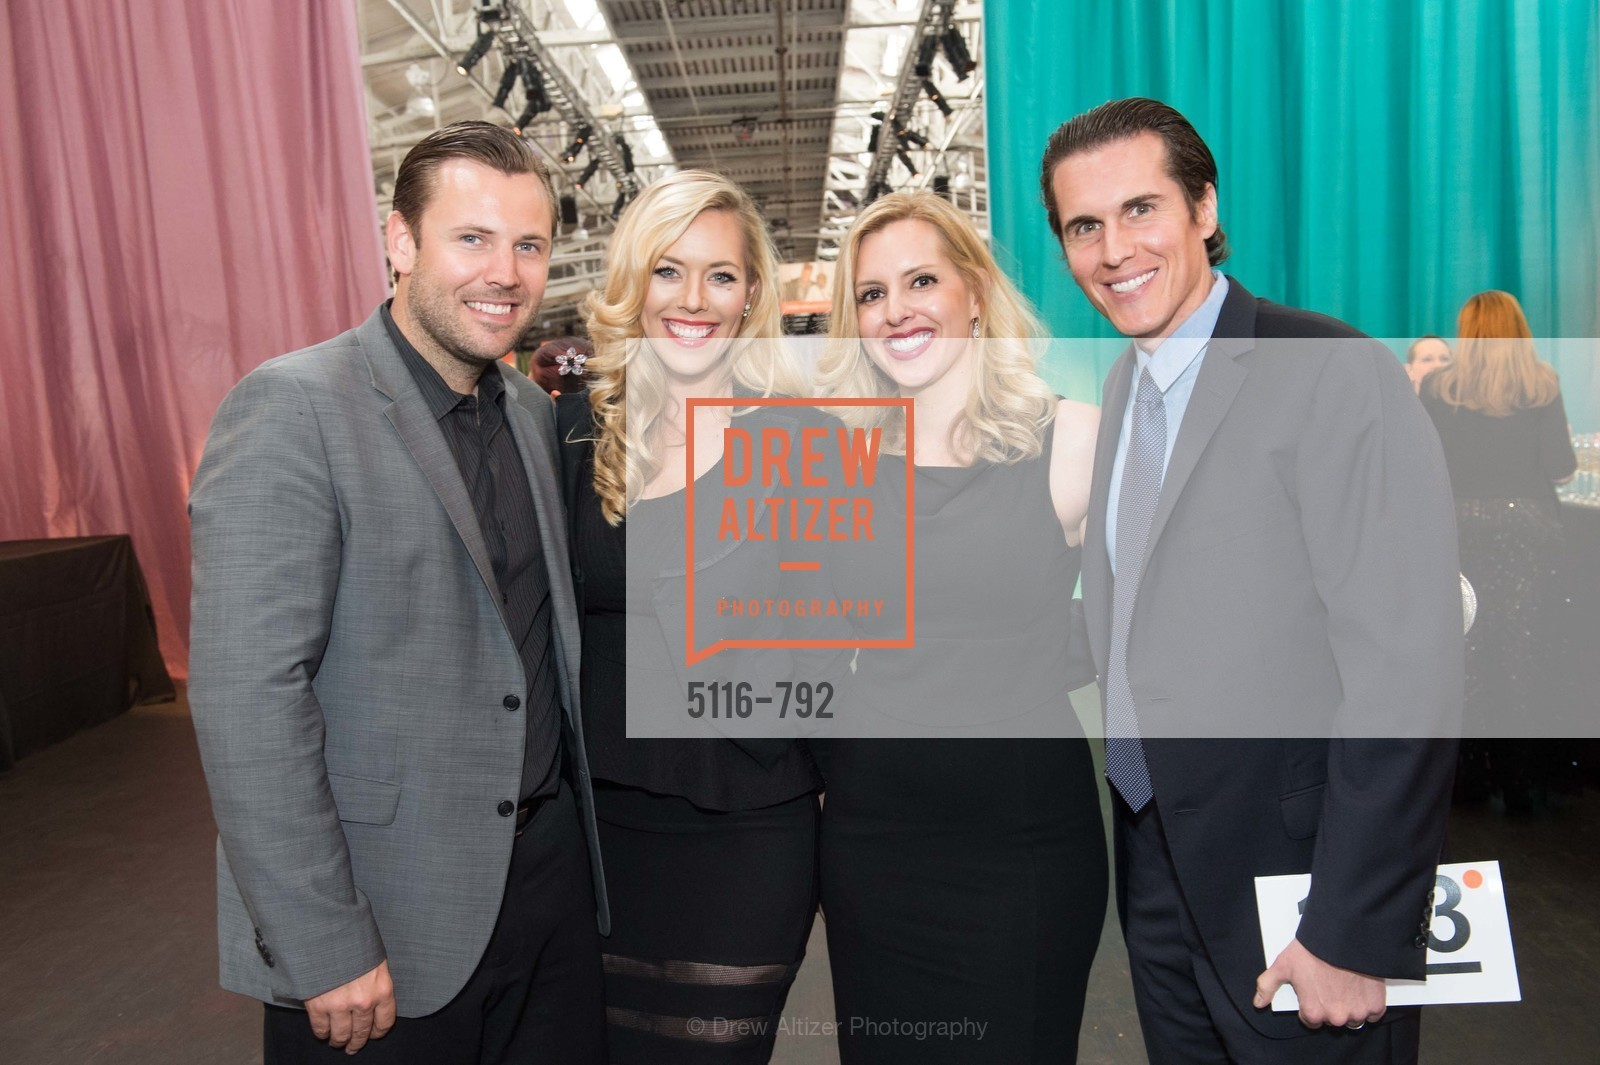 Alex Holt, Sarah Holt, McKenzie Malone, Ryan Lester, MEALS ON WHEELS OF SAN FRANCISCO'S 28th Annual Star Chefs and Vintners Gala, US, April 19th, 2015,Drew Altizer, Drew Altizer Photography, full-service agency, private events, San Francisco photographer, photographer california